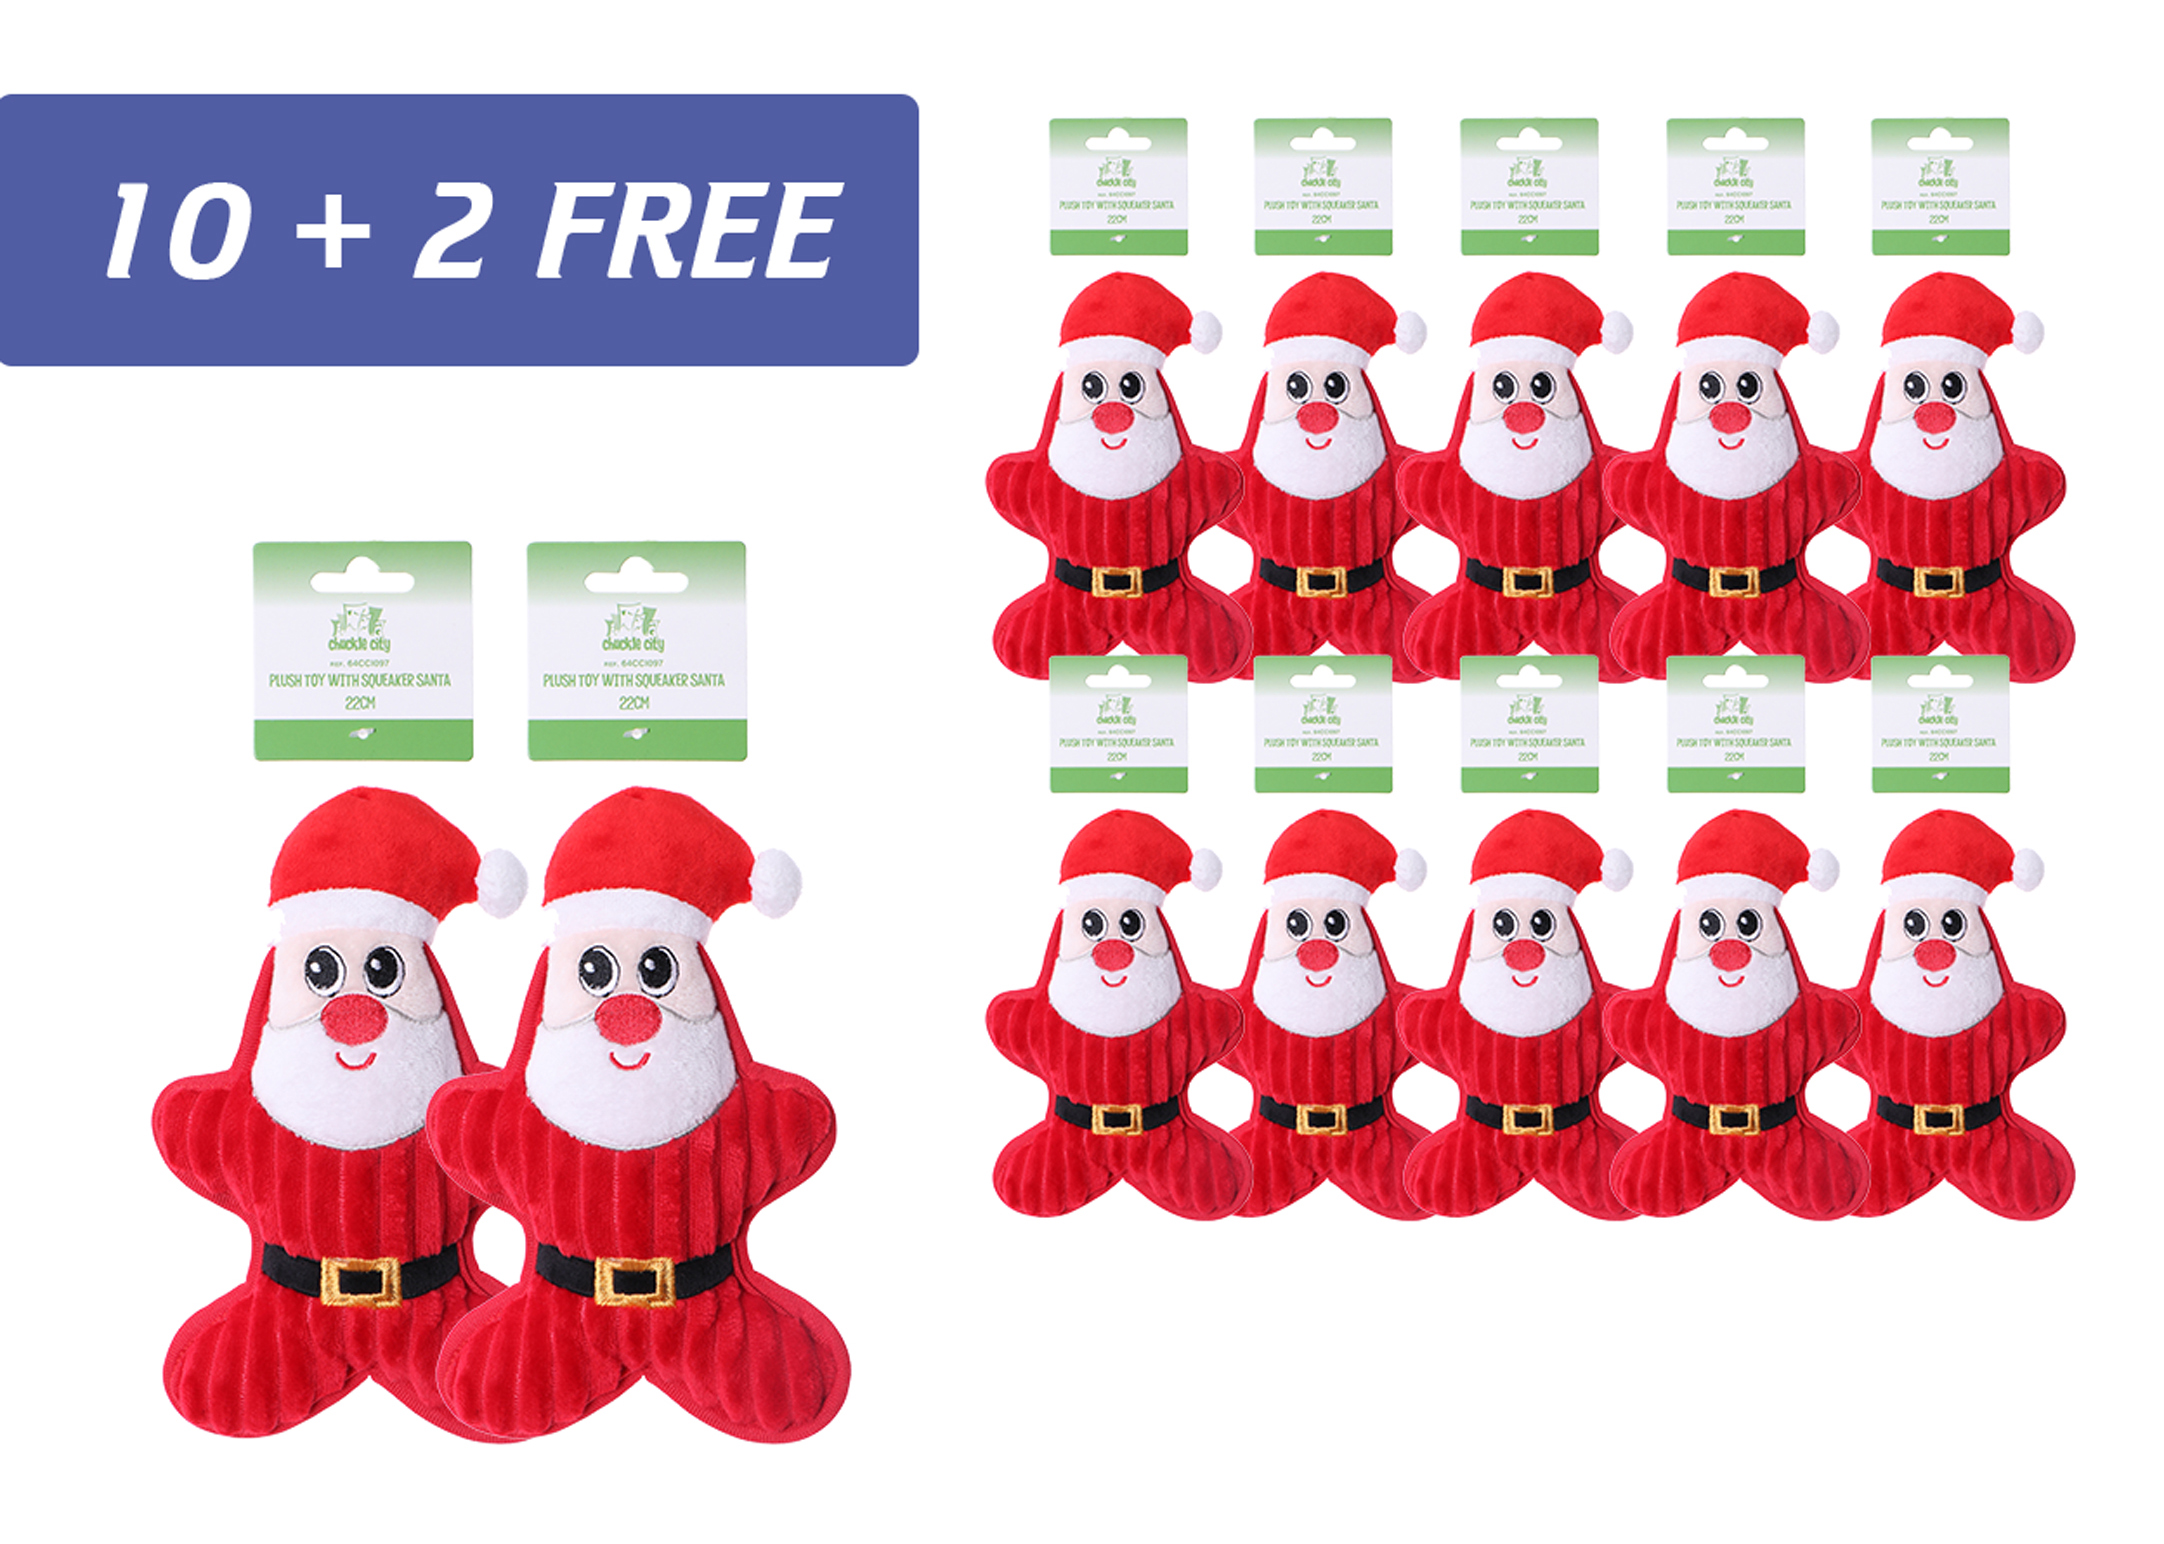 Chuckle City promo 10+2 free Plush Toy with Squeaker Santa 22 cm